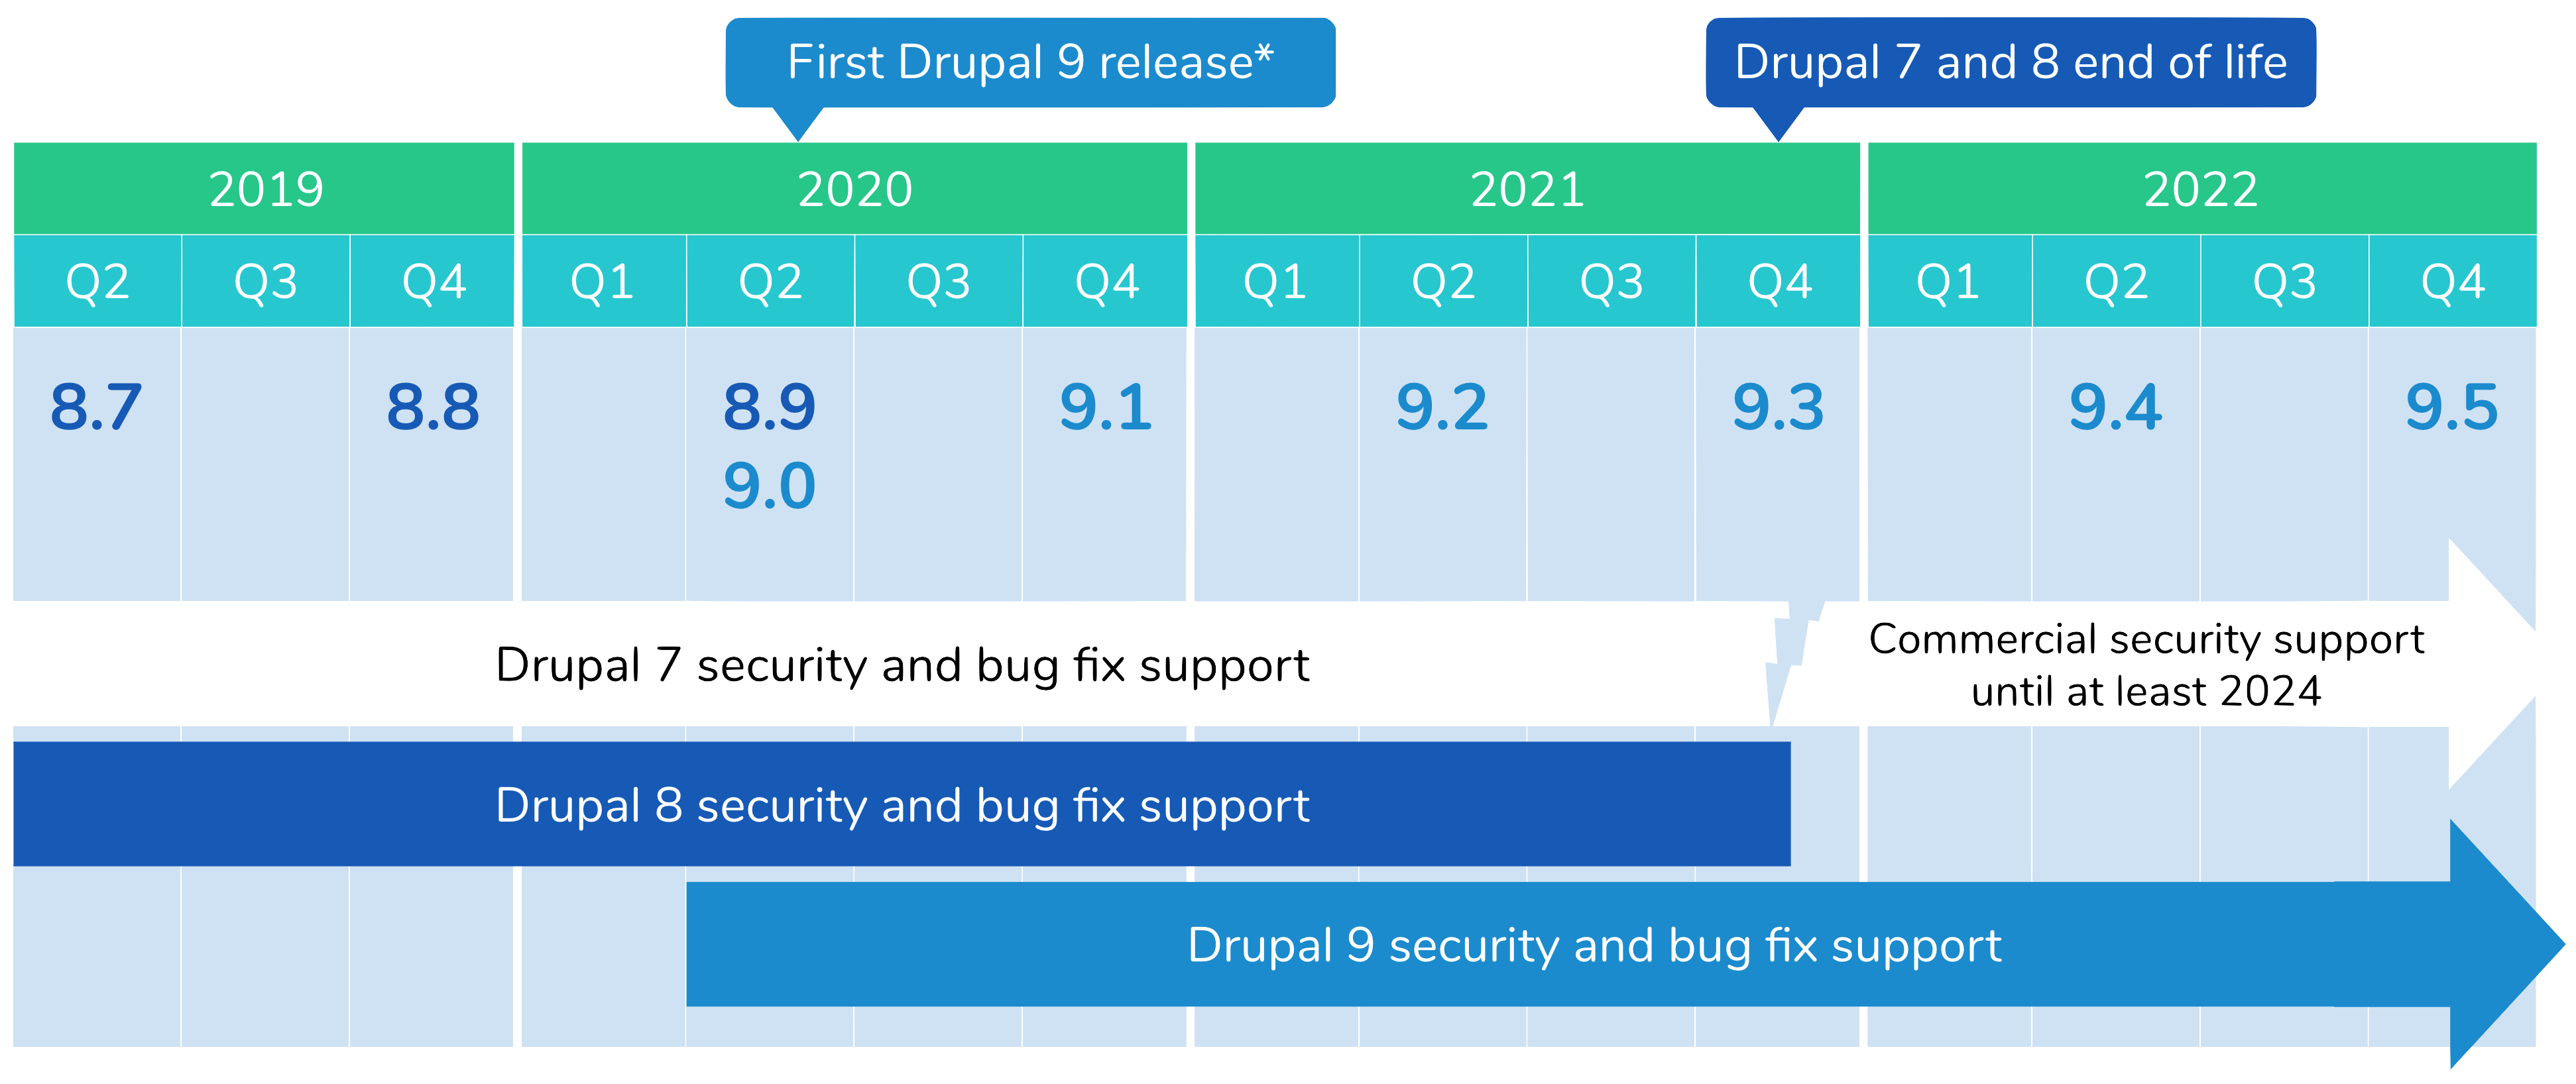 Drupal 8 and 9 releases